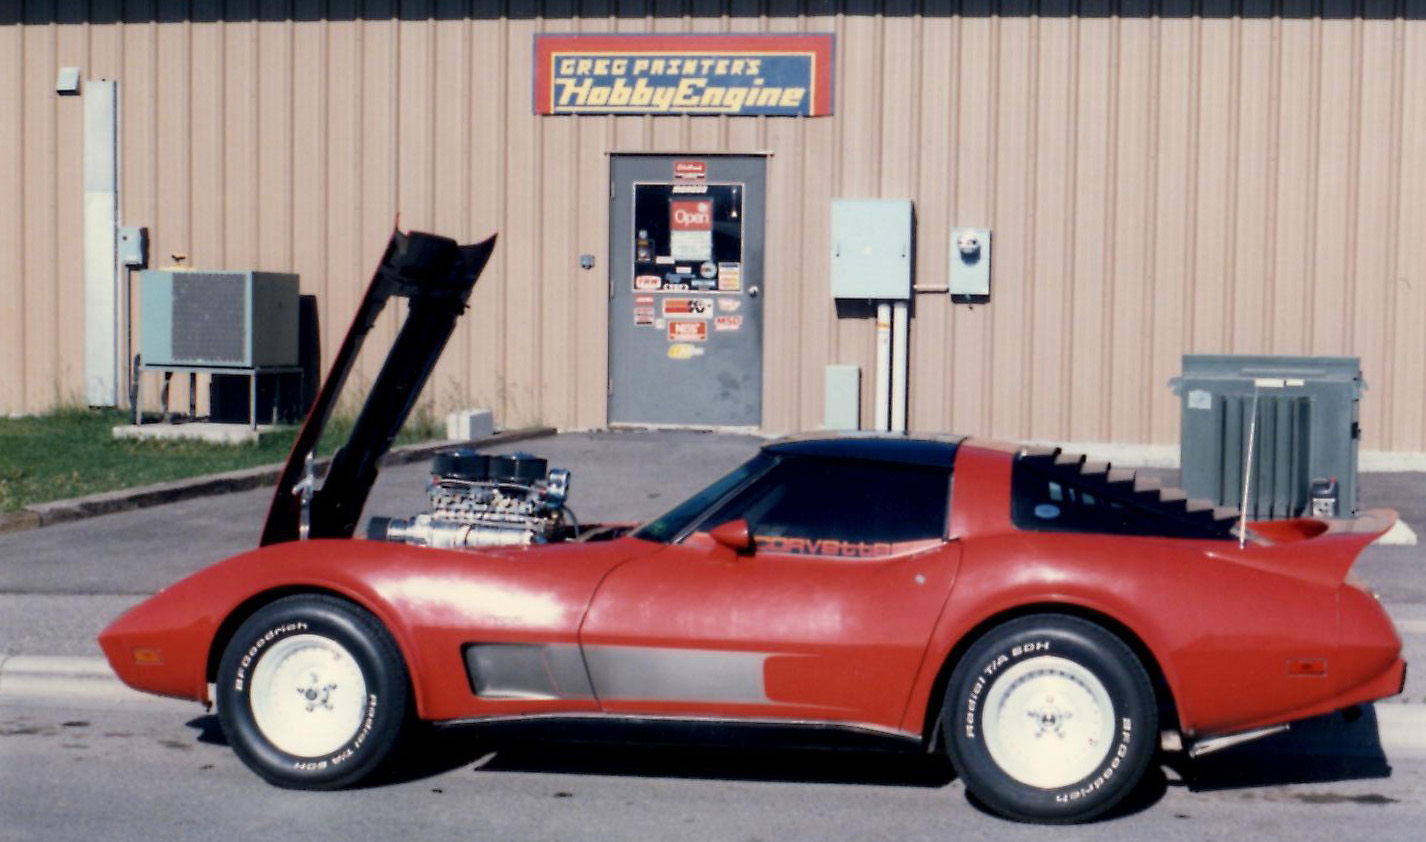 """Greg's supercharged Corvette in front of his first business """"Hobby Engine""""."""